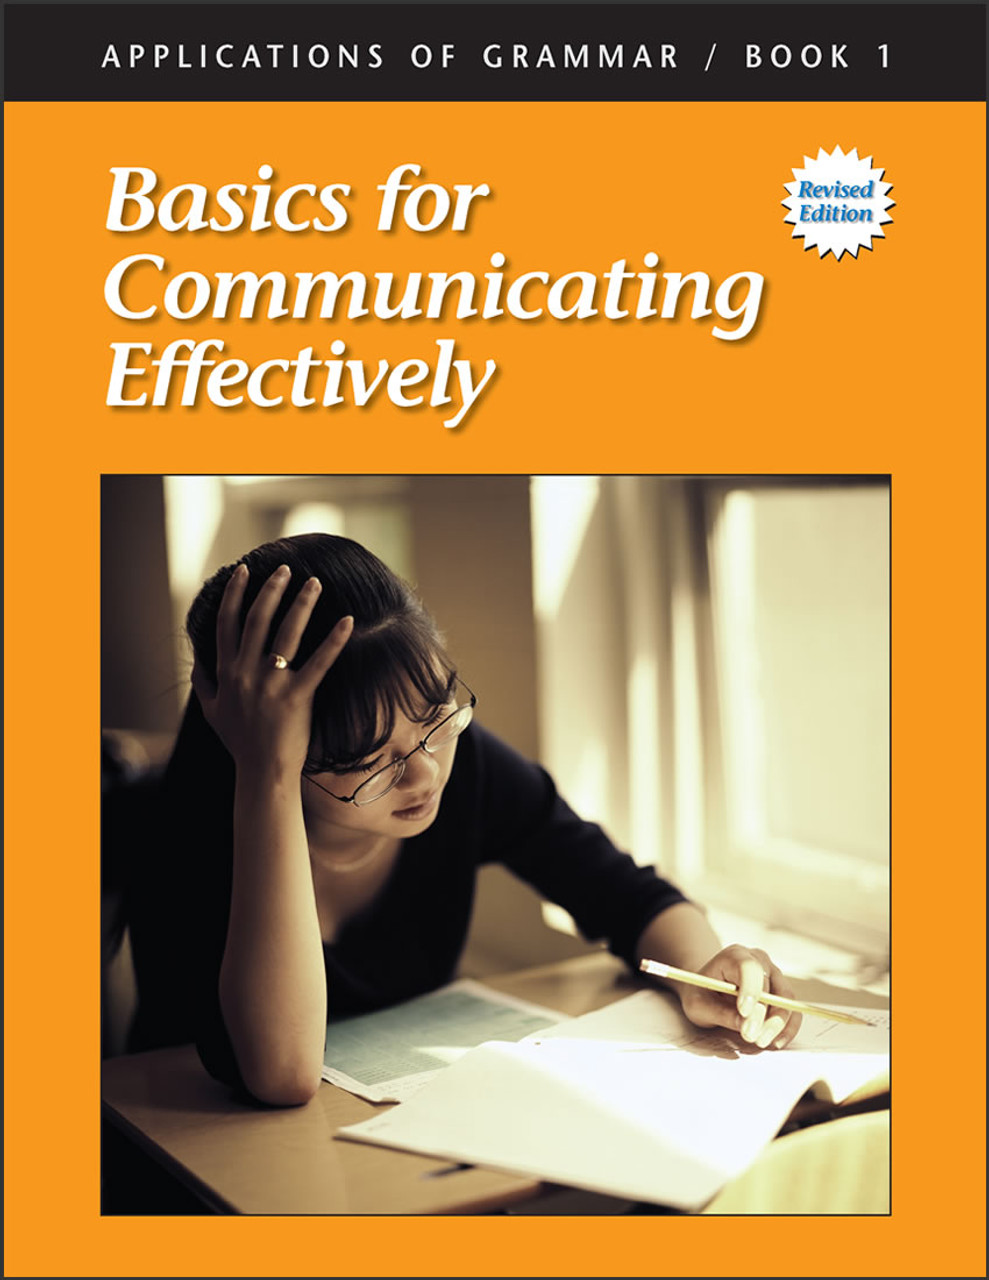 Applications of Grammar Book 1: Basics for Communicating Effectively